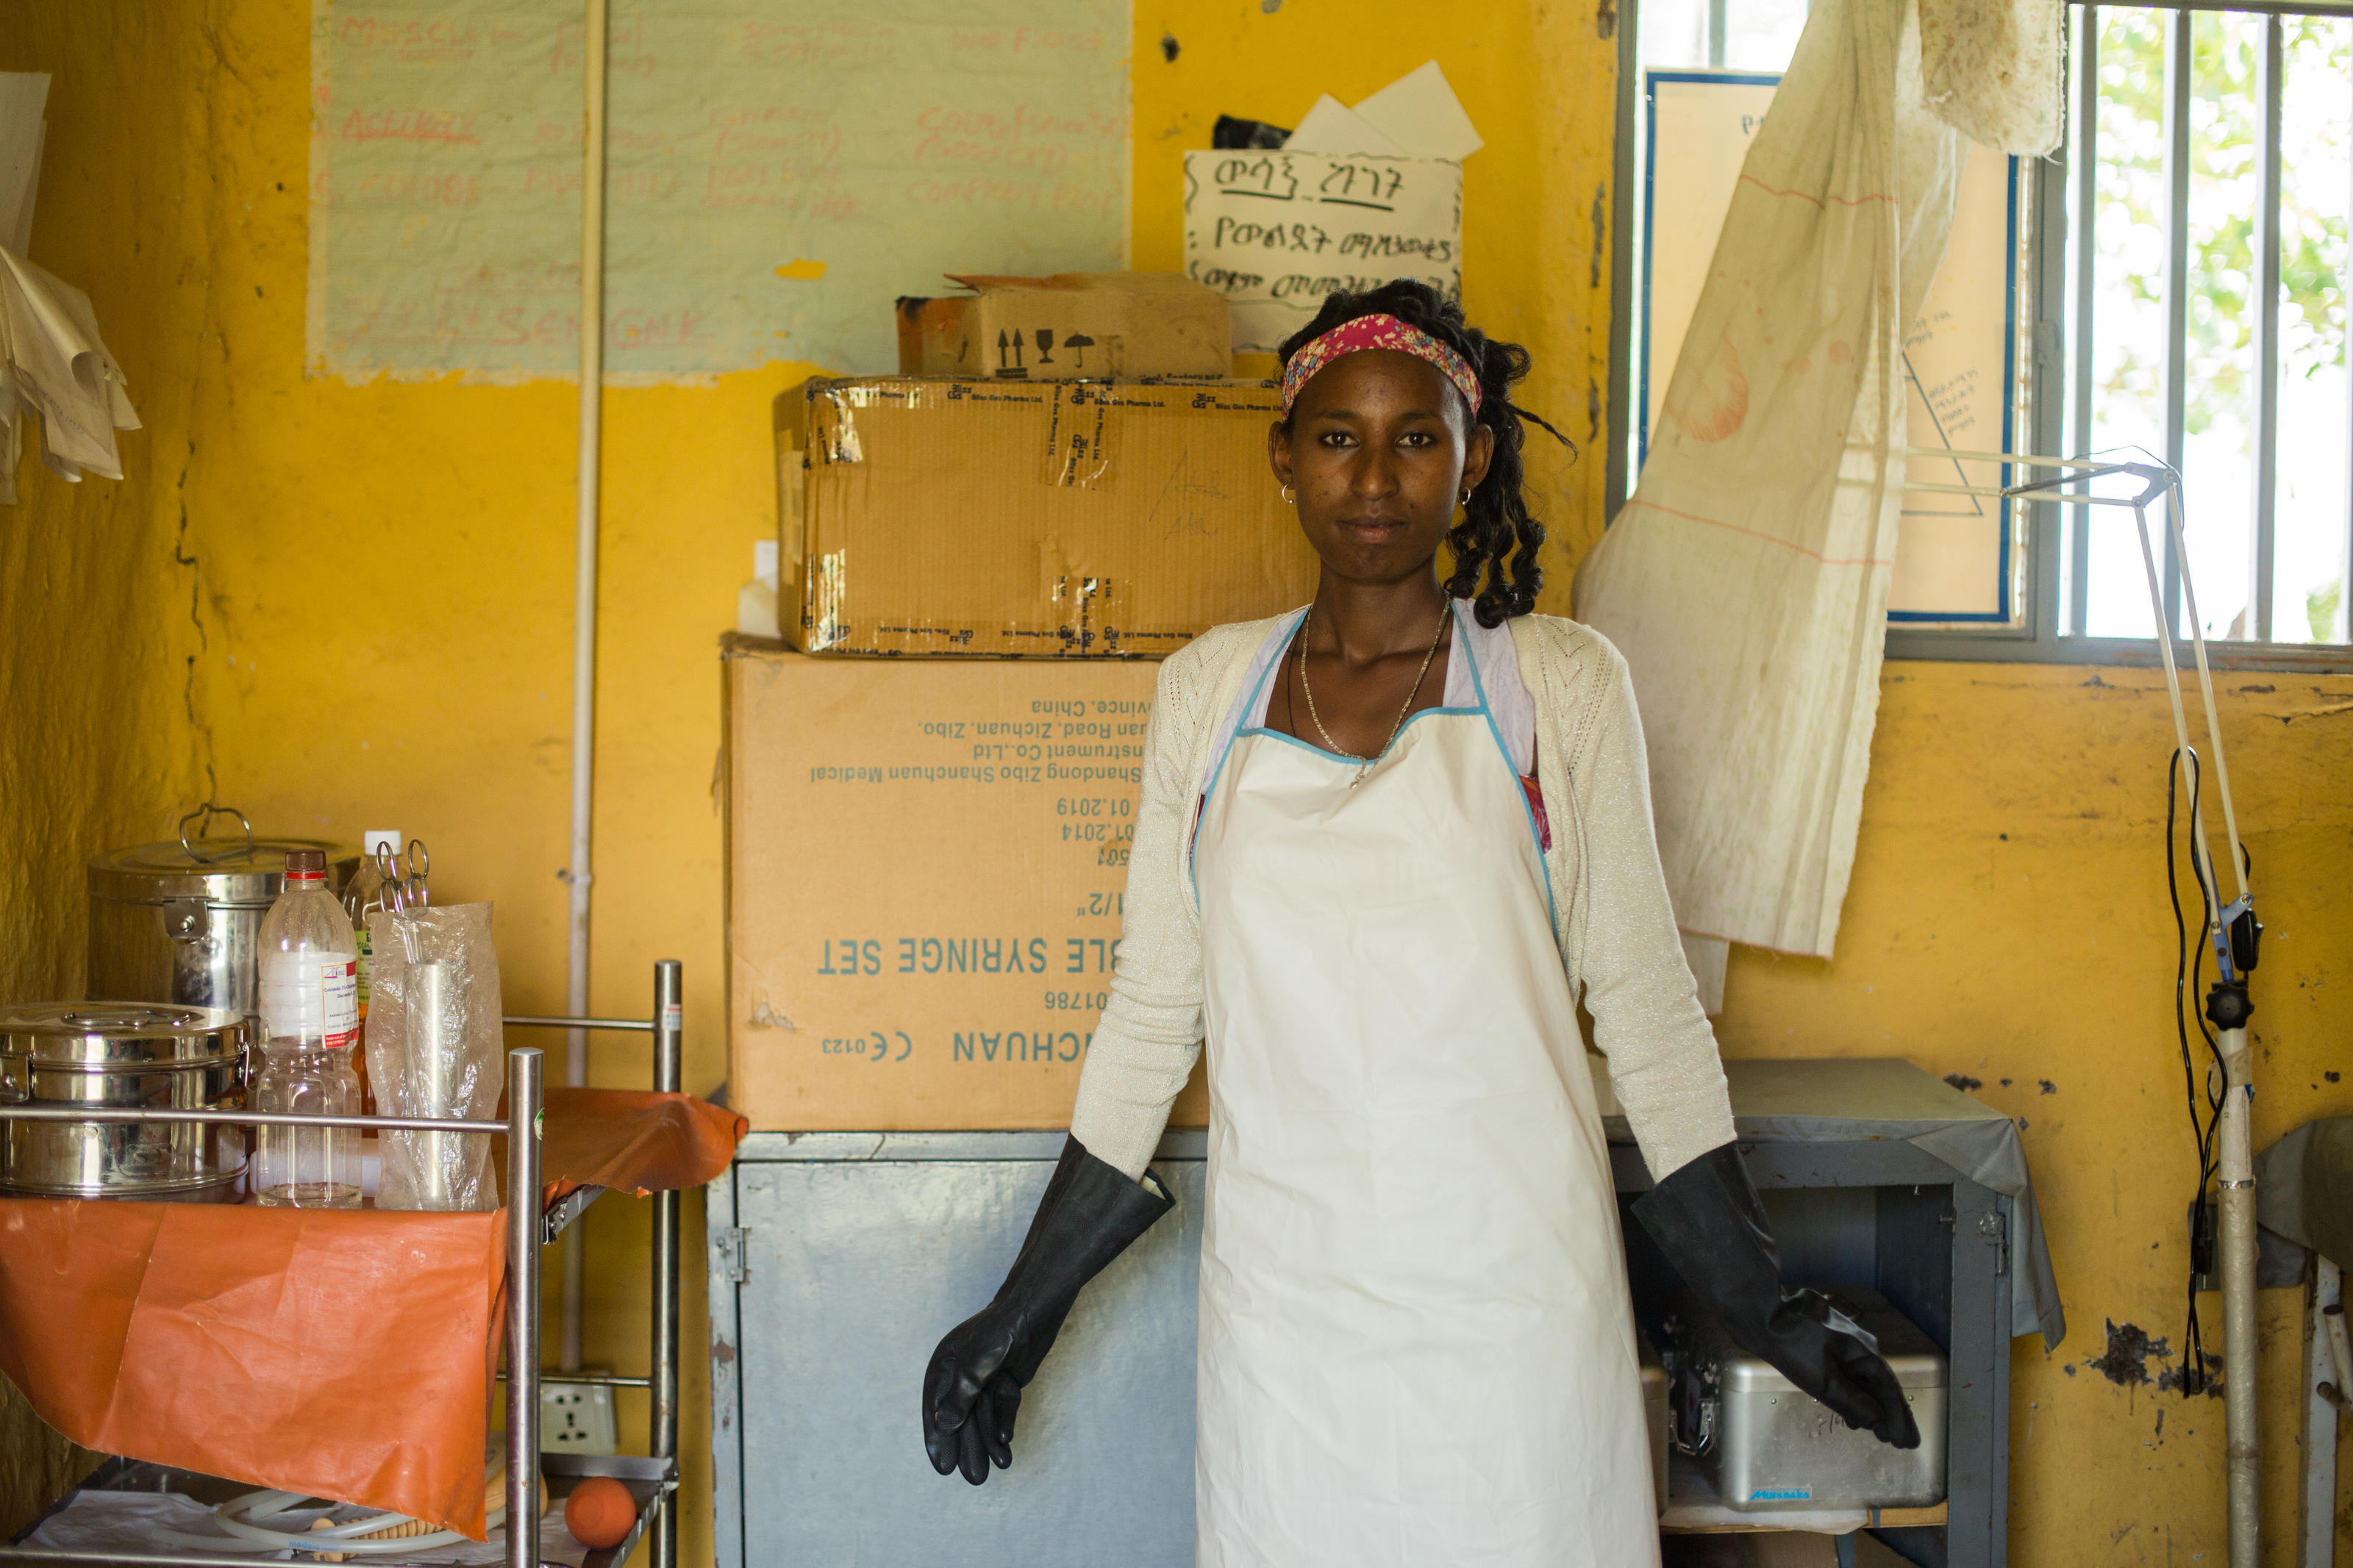 Yehasab Ayenew, 24, a cleaner at Yiraber Health Centre, Jabi Tehnan, West Gojjam, Ethiopia, December 2018.